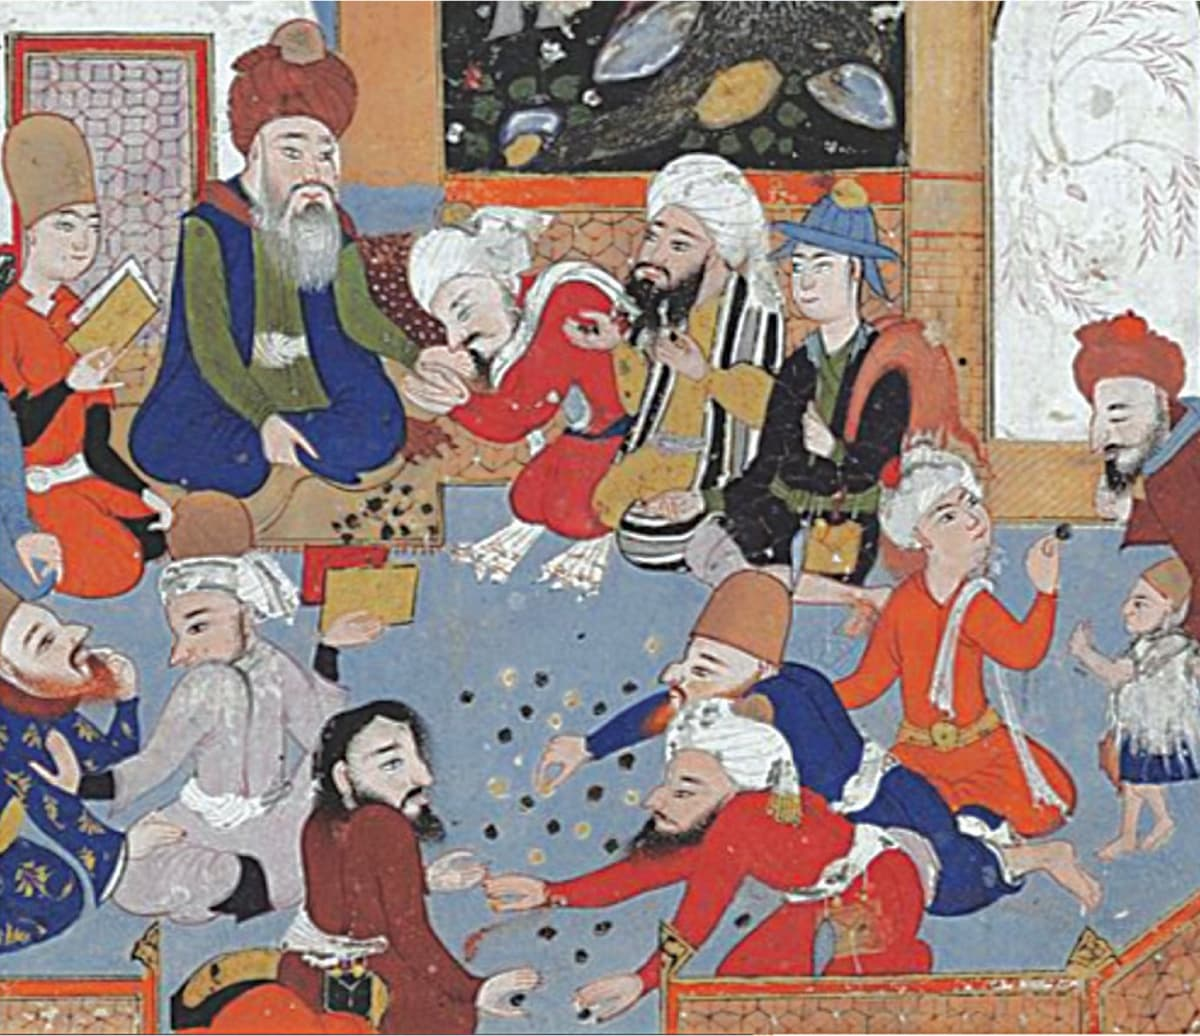 Maulana Jalaluddin Rumi distributing sweetmeats to disciples | Courtesy Museum of Fine Arts, Boston